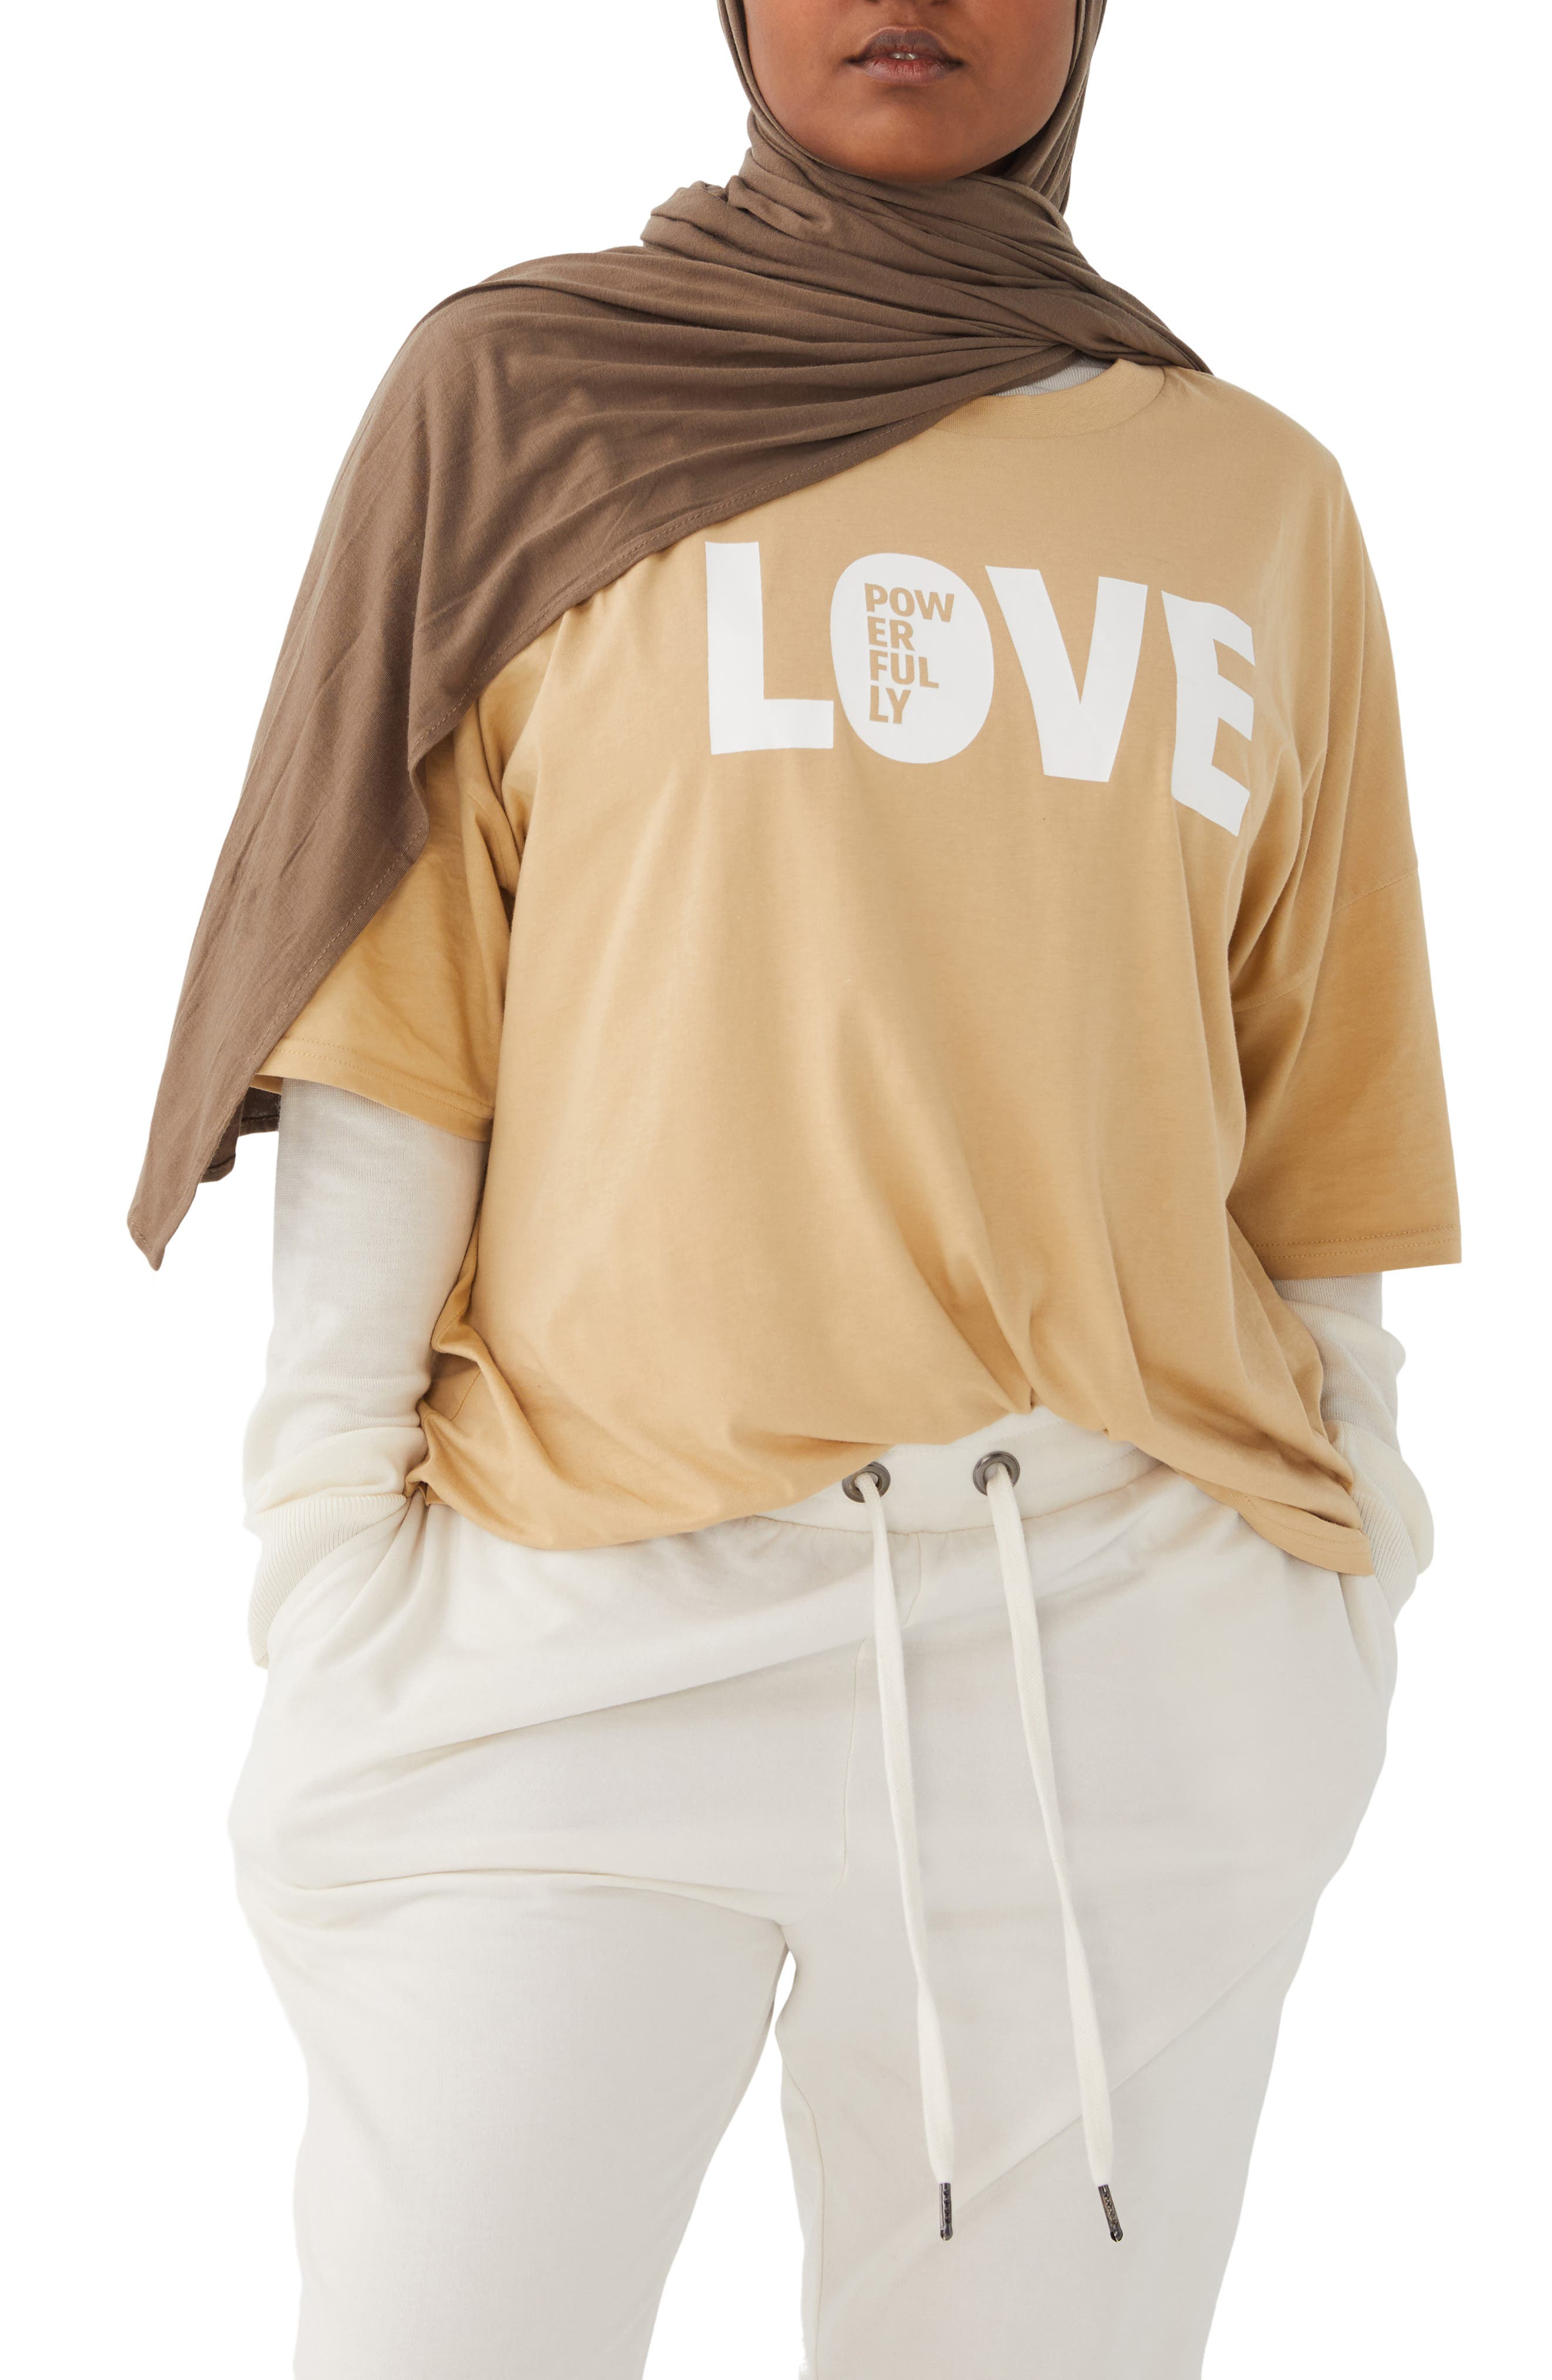 HUMAN NATION Gender Inclusive Love Graphic Tee